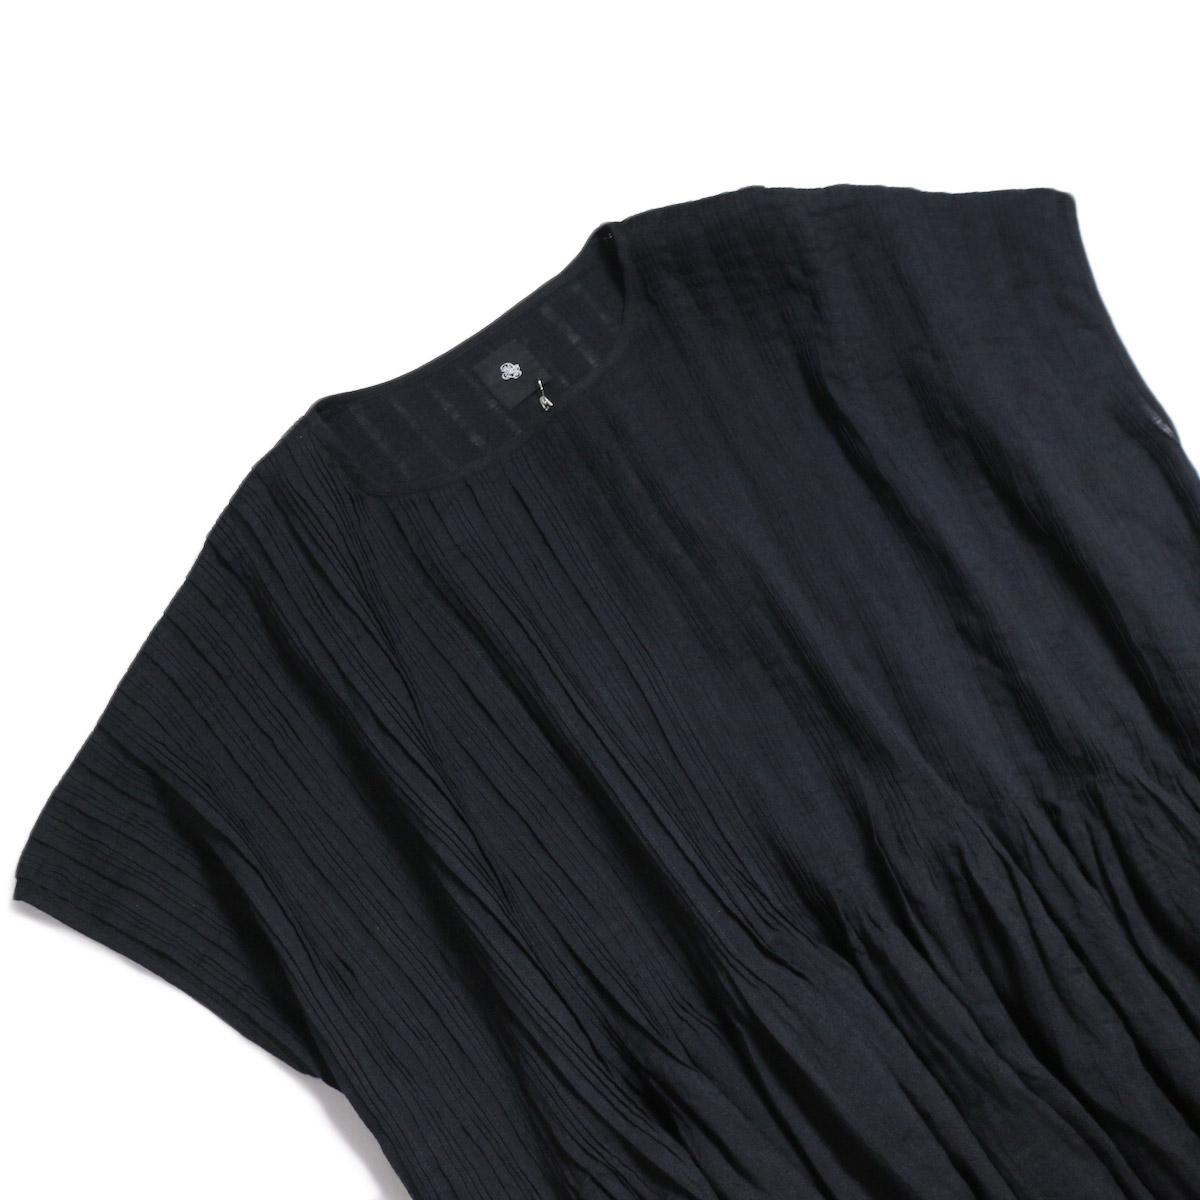 maison de soil / Pandom Pleats Dress -Black 首元